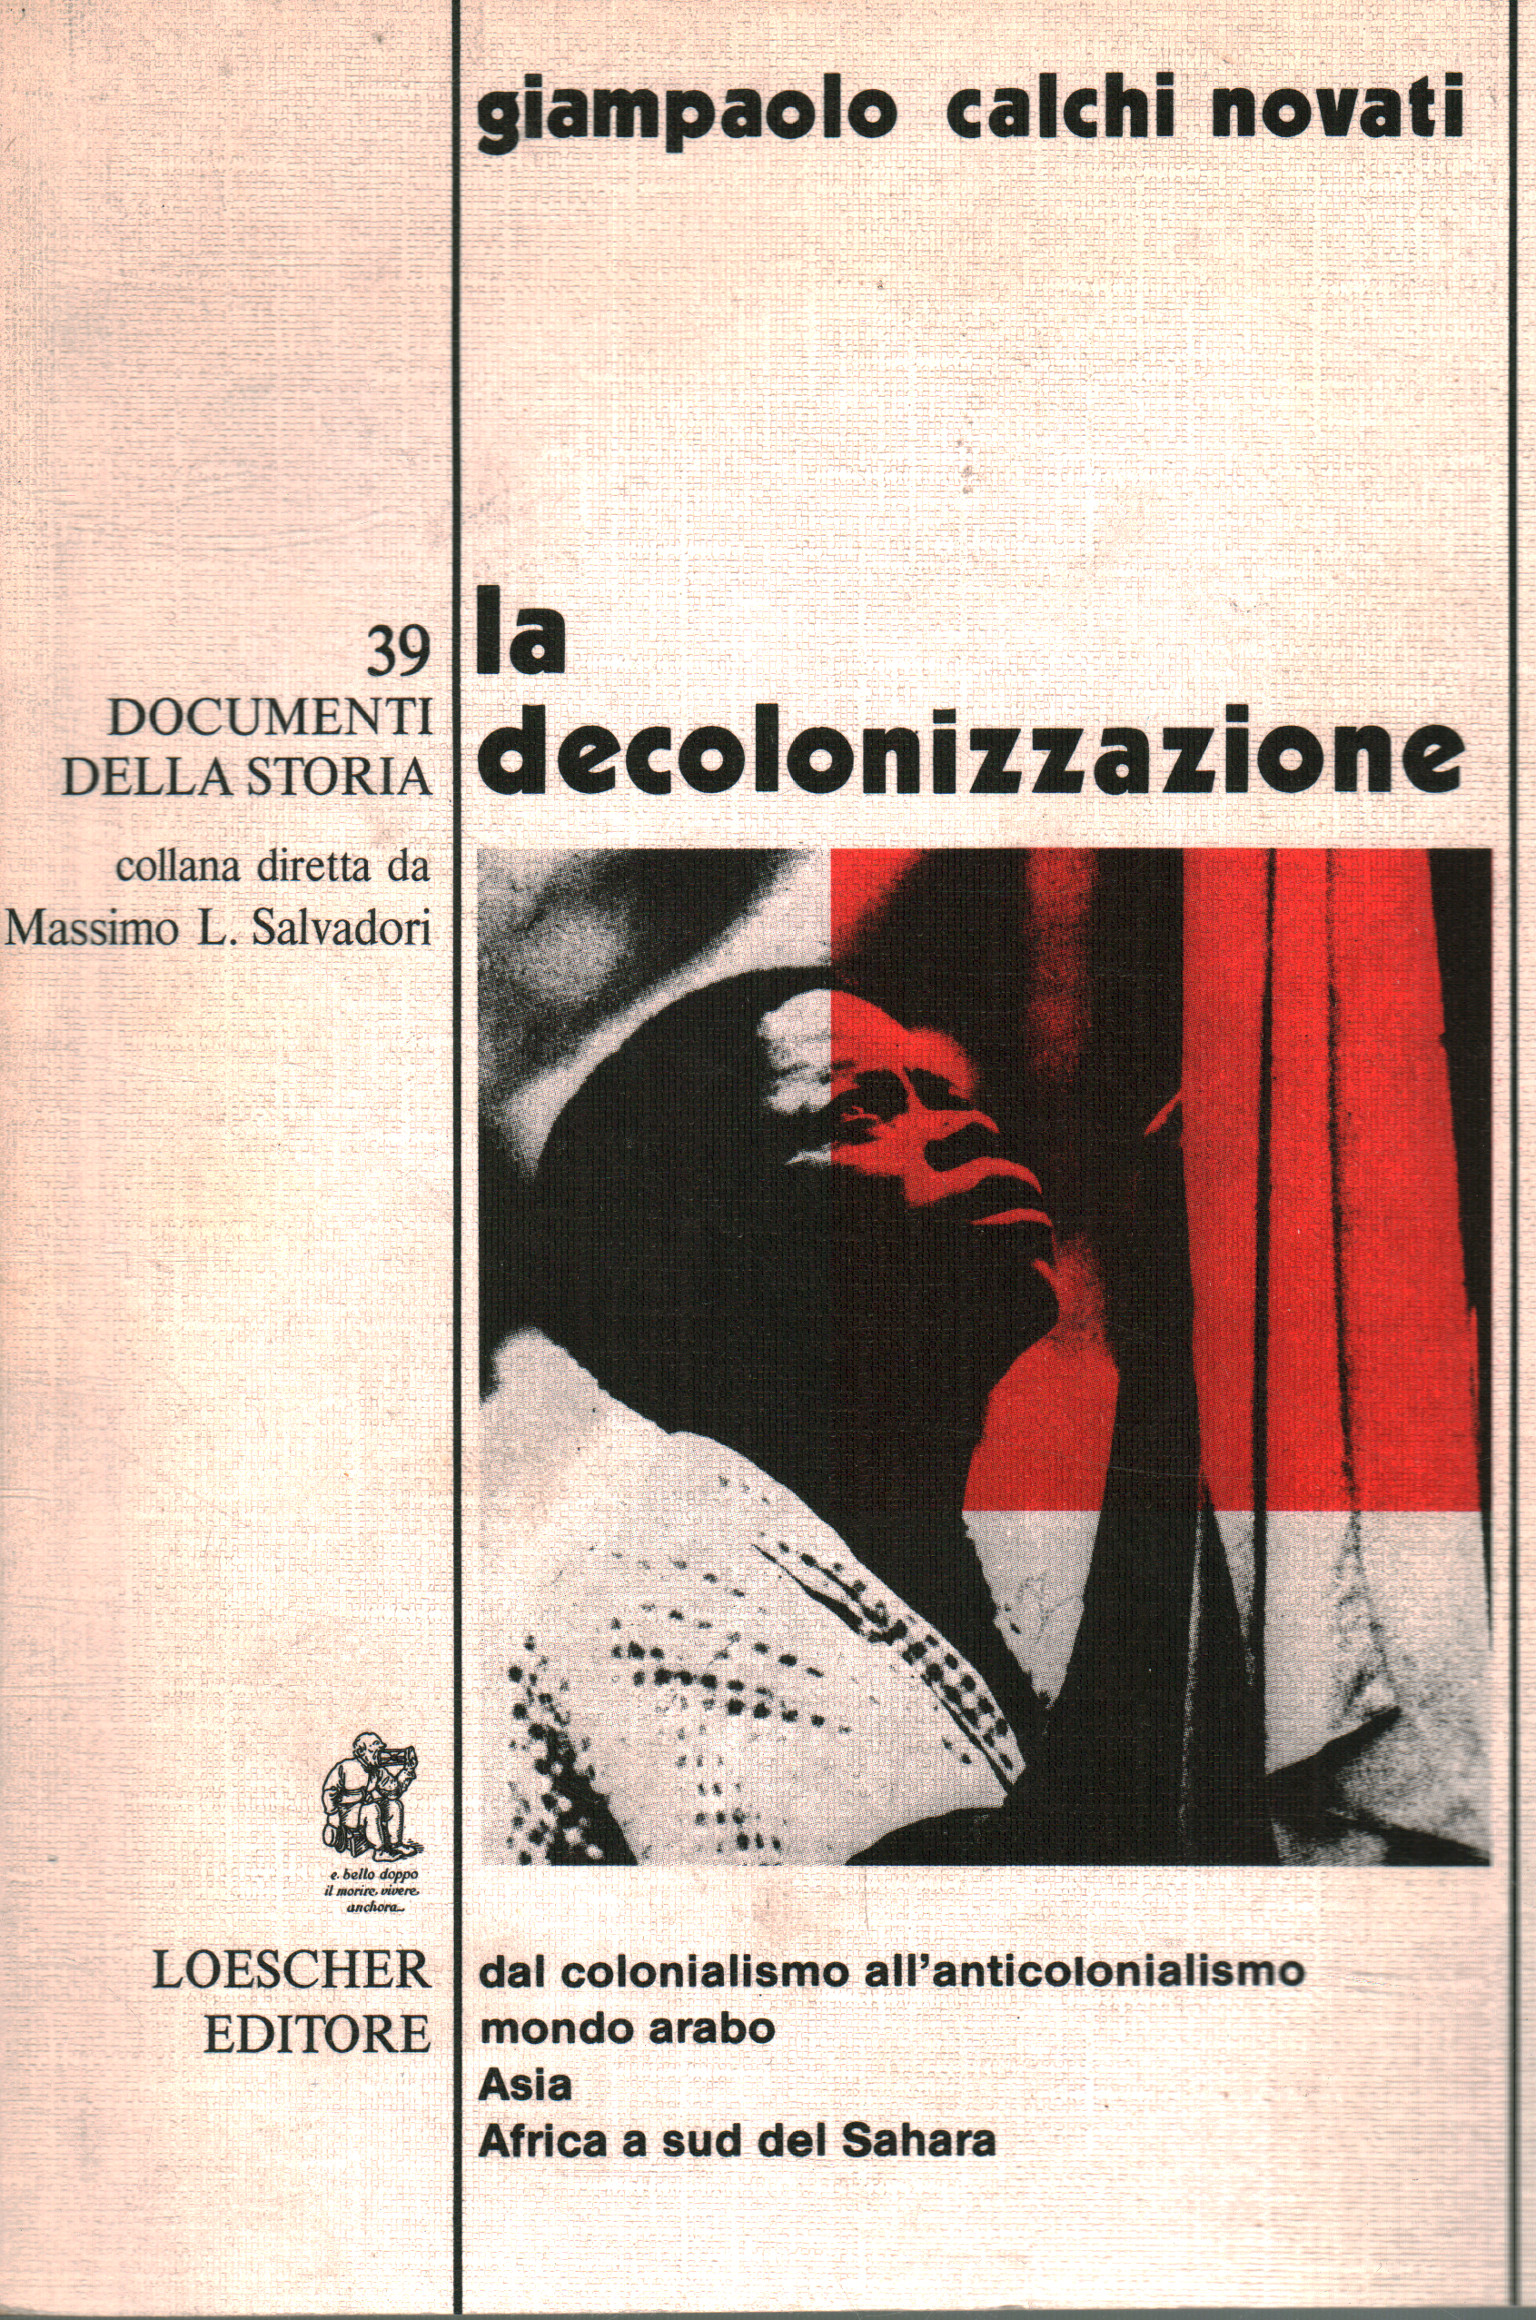 The decolonization, Giampaolo Calchi Novati